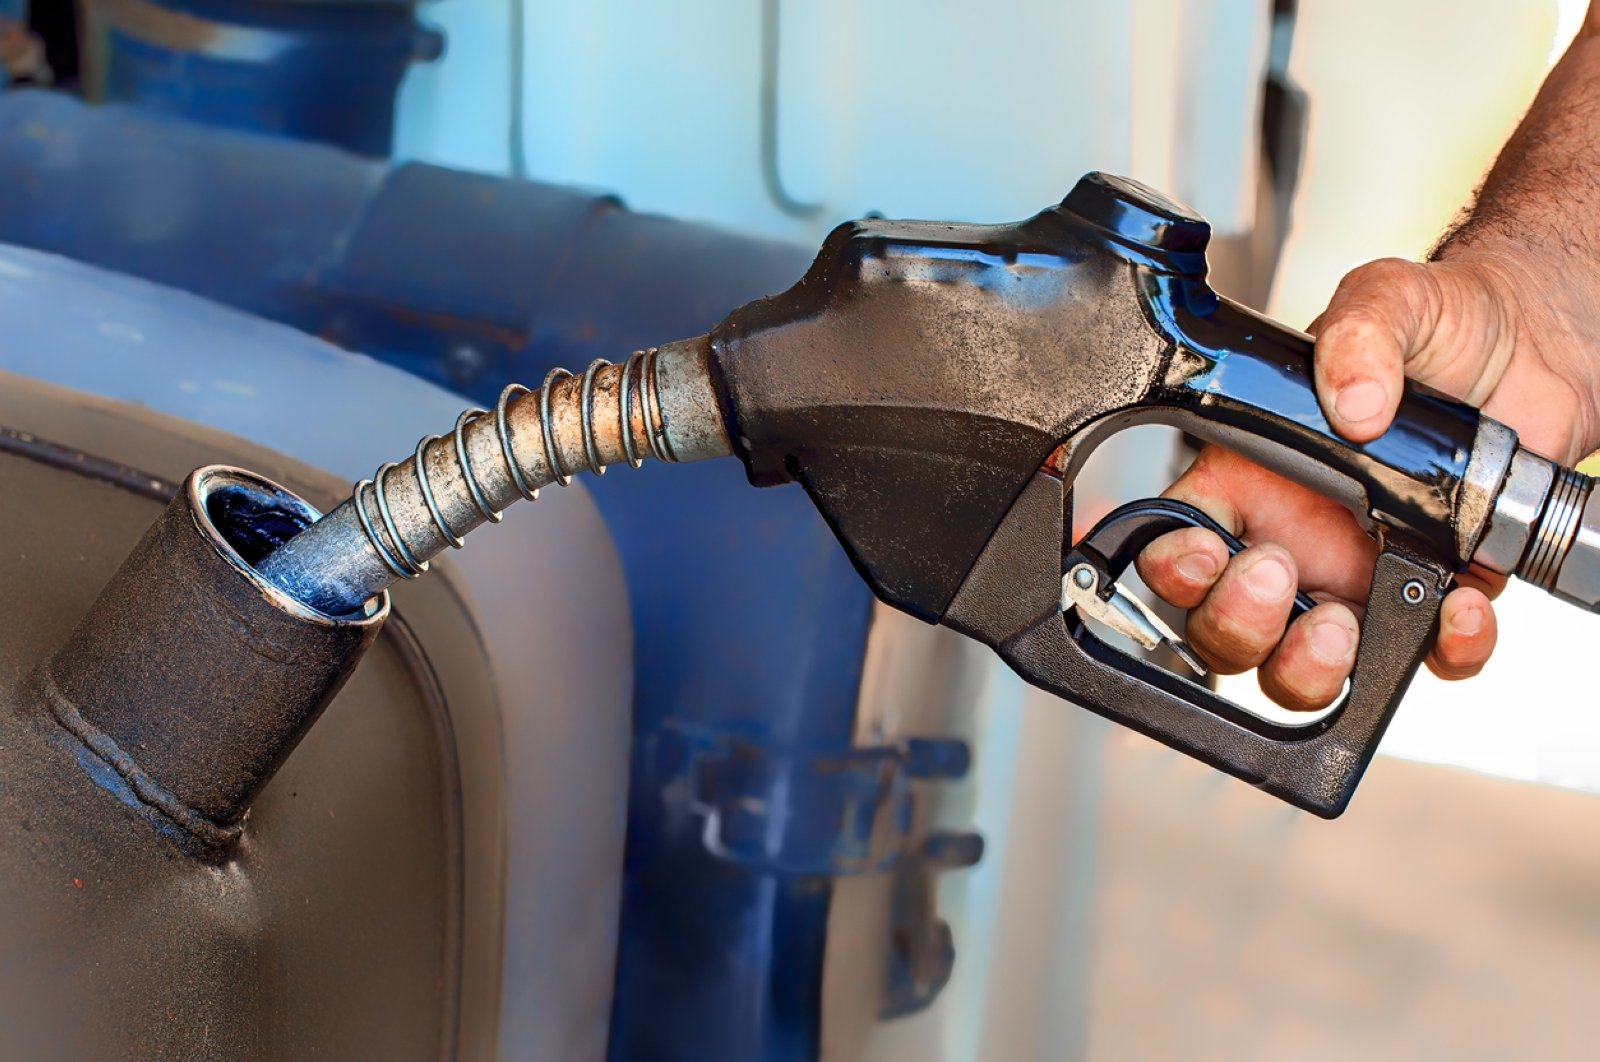 Demand for fuel decreased in the first six months of 2020 due to pandemic restrictions. (iStock Photo)